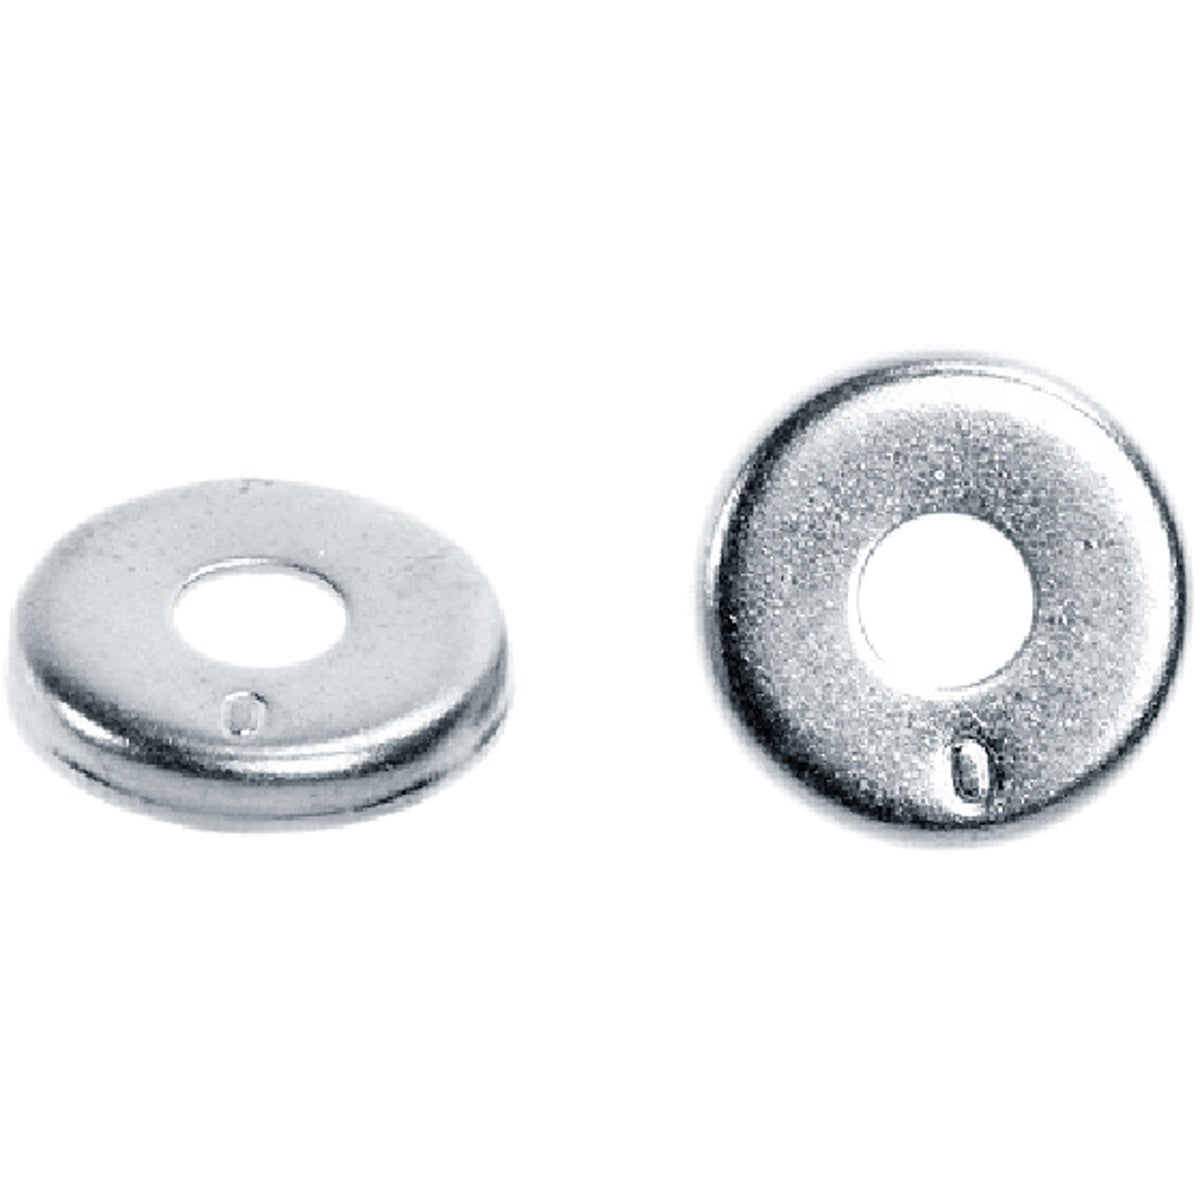 0 RETAINER WASHER - 35109B by Danco Perfect Match